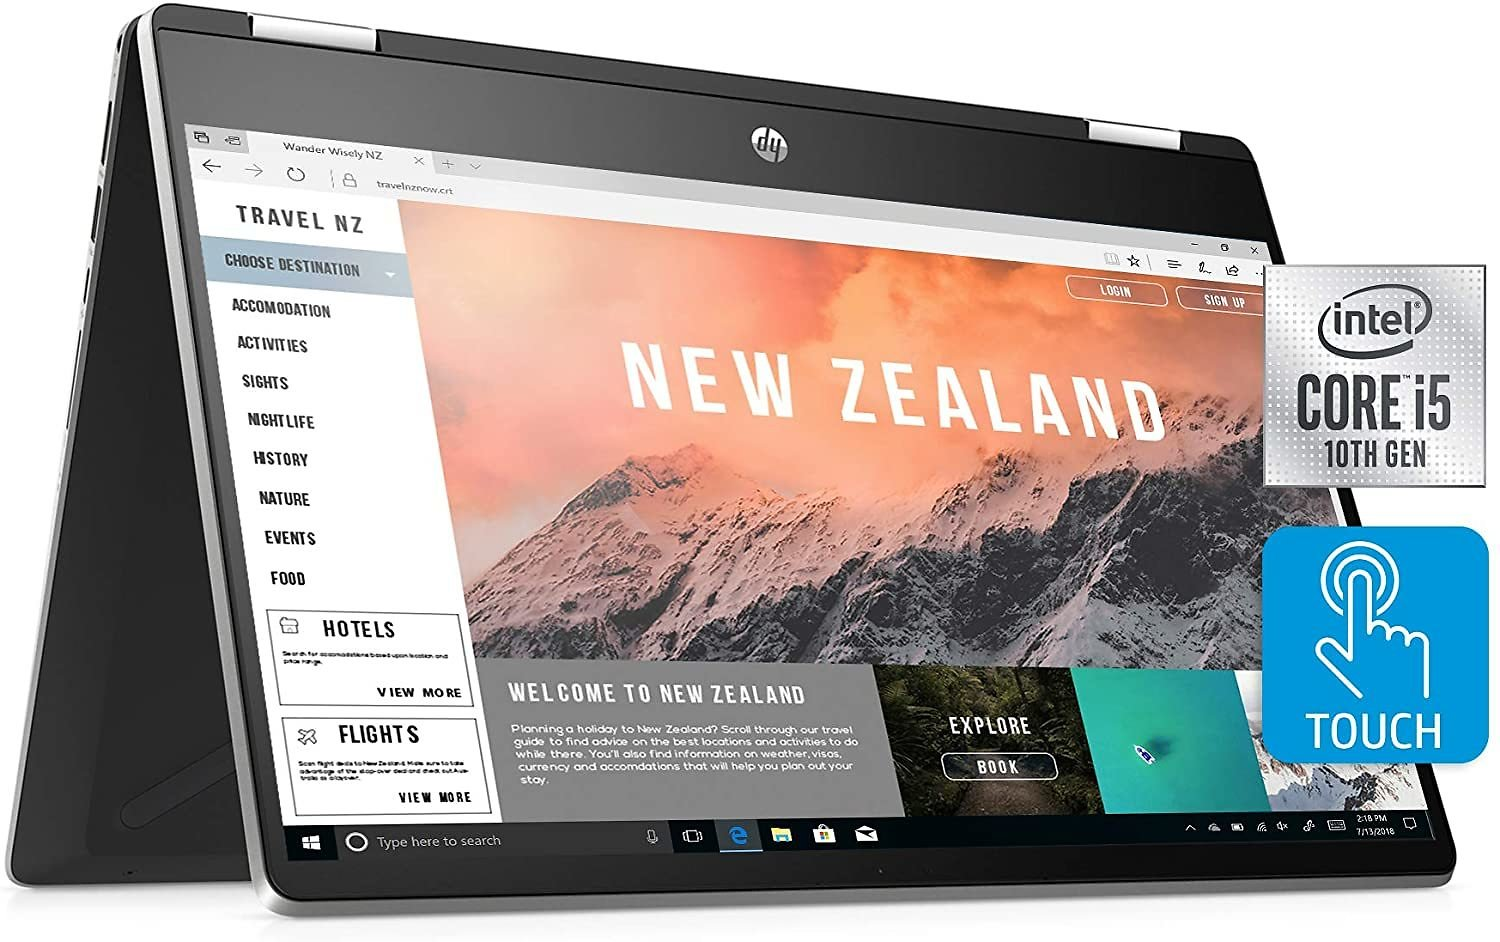 HP Pavilion X360 Convertible 14-inch FHD Touchscreen 2-in-1 Laptop, 10th Gen Intel Core I5-1035G1, 8 GB RAM, 512 GB SSD, Amazon Alexa Voice Compatible, Windows 10 Home (14-dh2011nr, Natural Silver)